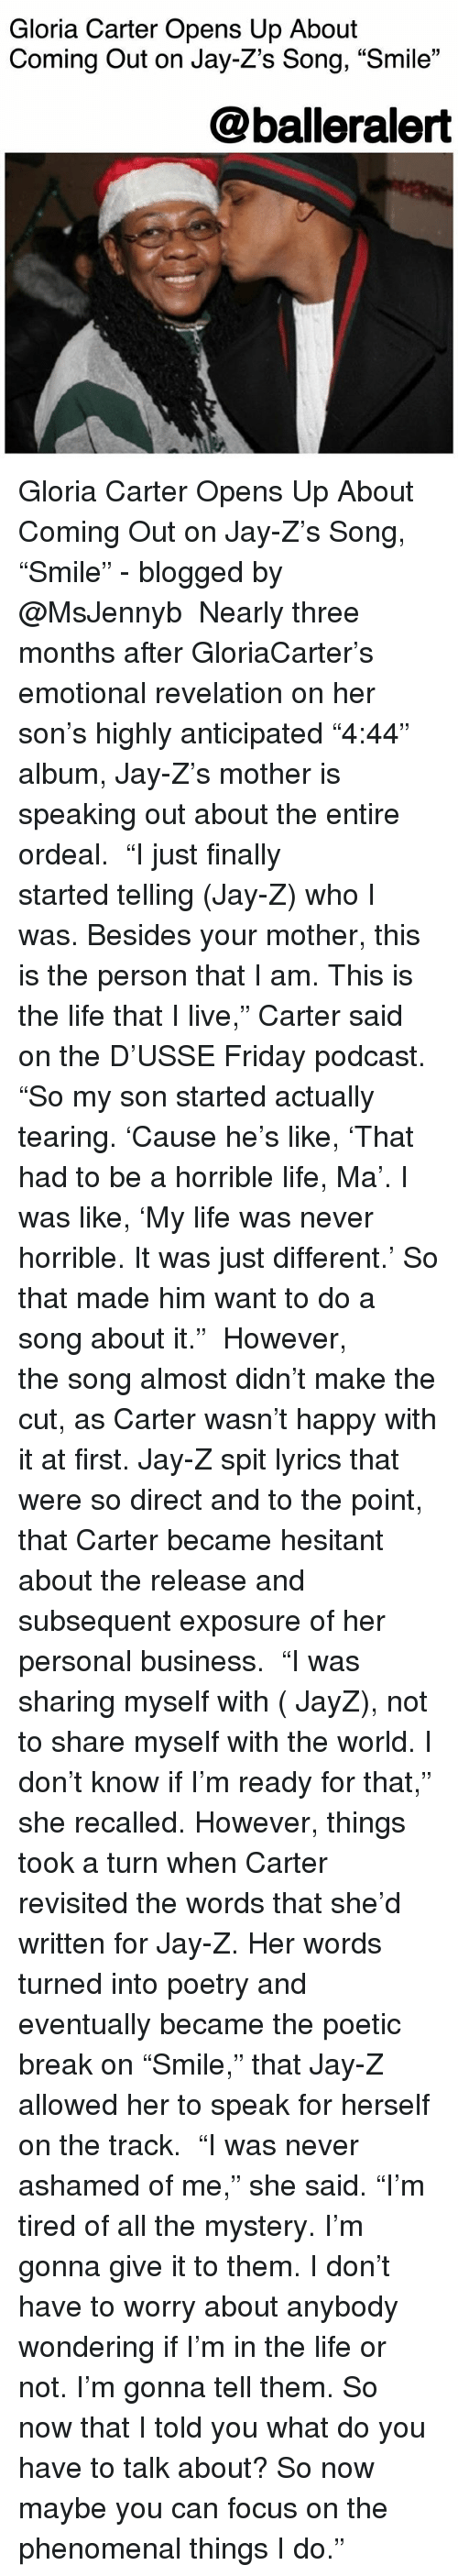 """Jays: Gloria Carter Opens Up About  Coming Out on Jay-Z's Song, """"Smile""""  @balleralert Gloria Carter Opens Up About Coming Out on Jay-Z's Song, """"Smile"""" - blogged by @MsJennyb ⠀⠀⠀⠀⠀⠀⠀⠀⠀ Nearly three months after GloriaCarter's emotional revelation on her son's highly anticipated """"4:44"""" album, Jay-Z's mother is speaking out about the entire ordeal. ⠀⠀⠀⠀⠀⠀⠀⠀⠀ """"I just finally started telling (Jay-Z) who I was. Besides your mother, this is the person that I am. This is the life that I live,"""" Carter said on the D'USSE Friday podcast. """"So my son started actually tearing. 'Cause he's like, 'That had to be a horrible life, Ma'. I was like, 'My life was never horrible. It was just different.' So that made him want to do a song about it."""" ⠀⠀⠀⠀⠀⠀⠀⠀⠀ However, the song almost didn't make the cut, as Carter wasn't happy with it at first. Jay-Z spit lyrics that were so direct and to the point, that Carter became hesitant about the release and subsequent exposure of her personal business. ⠀⠀⠀⠀⠀⠀⠀⠀⠀ """"I was sharing myself with ( JayZ), not to share myself with the world. I don't know if I'm ready for that,"""" she recalled. However, things took a turn when Carter revisited the words that she'd written for Jay-Z. Her words turned into poetry and eventually became the poetic break on """"Smile,"""" that Jay-Z allowed her to speak for herself on the track. ⠀⠀⠀⠀⠀⠀⠀⠀⠀ """"I was never ashamed of me,"""" she said. """"I'm tired of all the mystery. I'm gonna give it to them. I don't have to worry about anybody wondering if I'm in the life or not. I'm gonna tell them. So now that I told you what do you have to talk about? So now maybe you can focus on the phenomenal things I do."""""""